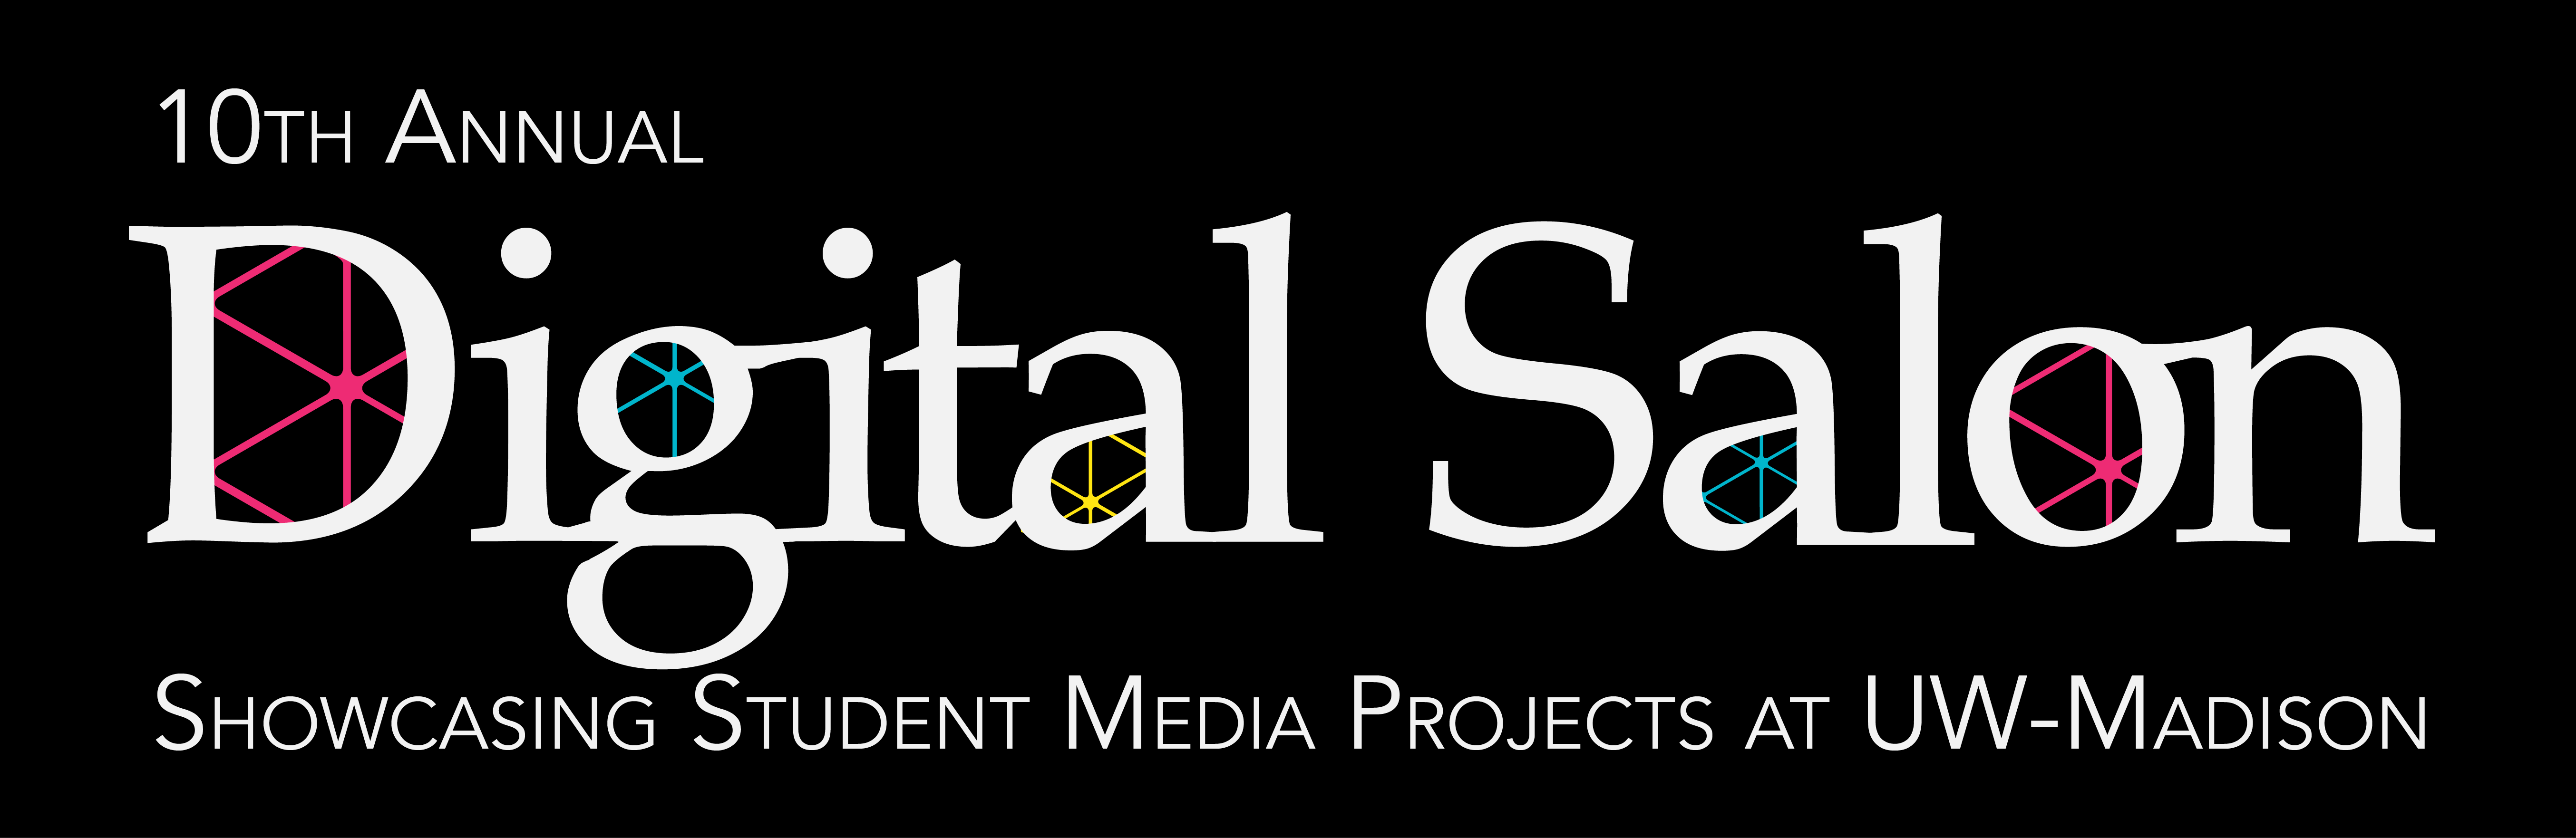 Digital Salon 10th Annual Website Logo